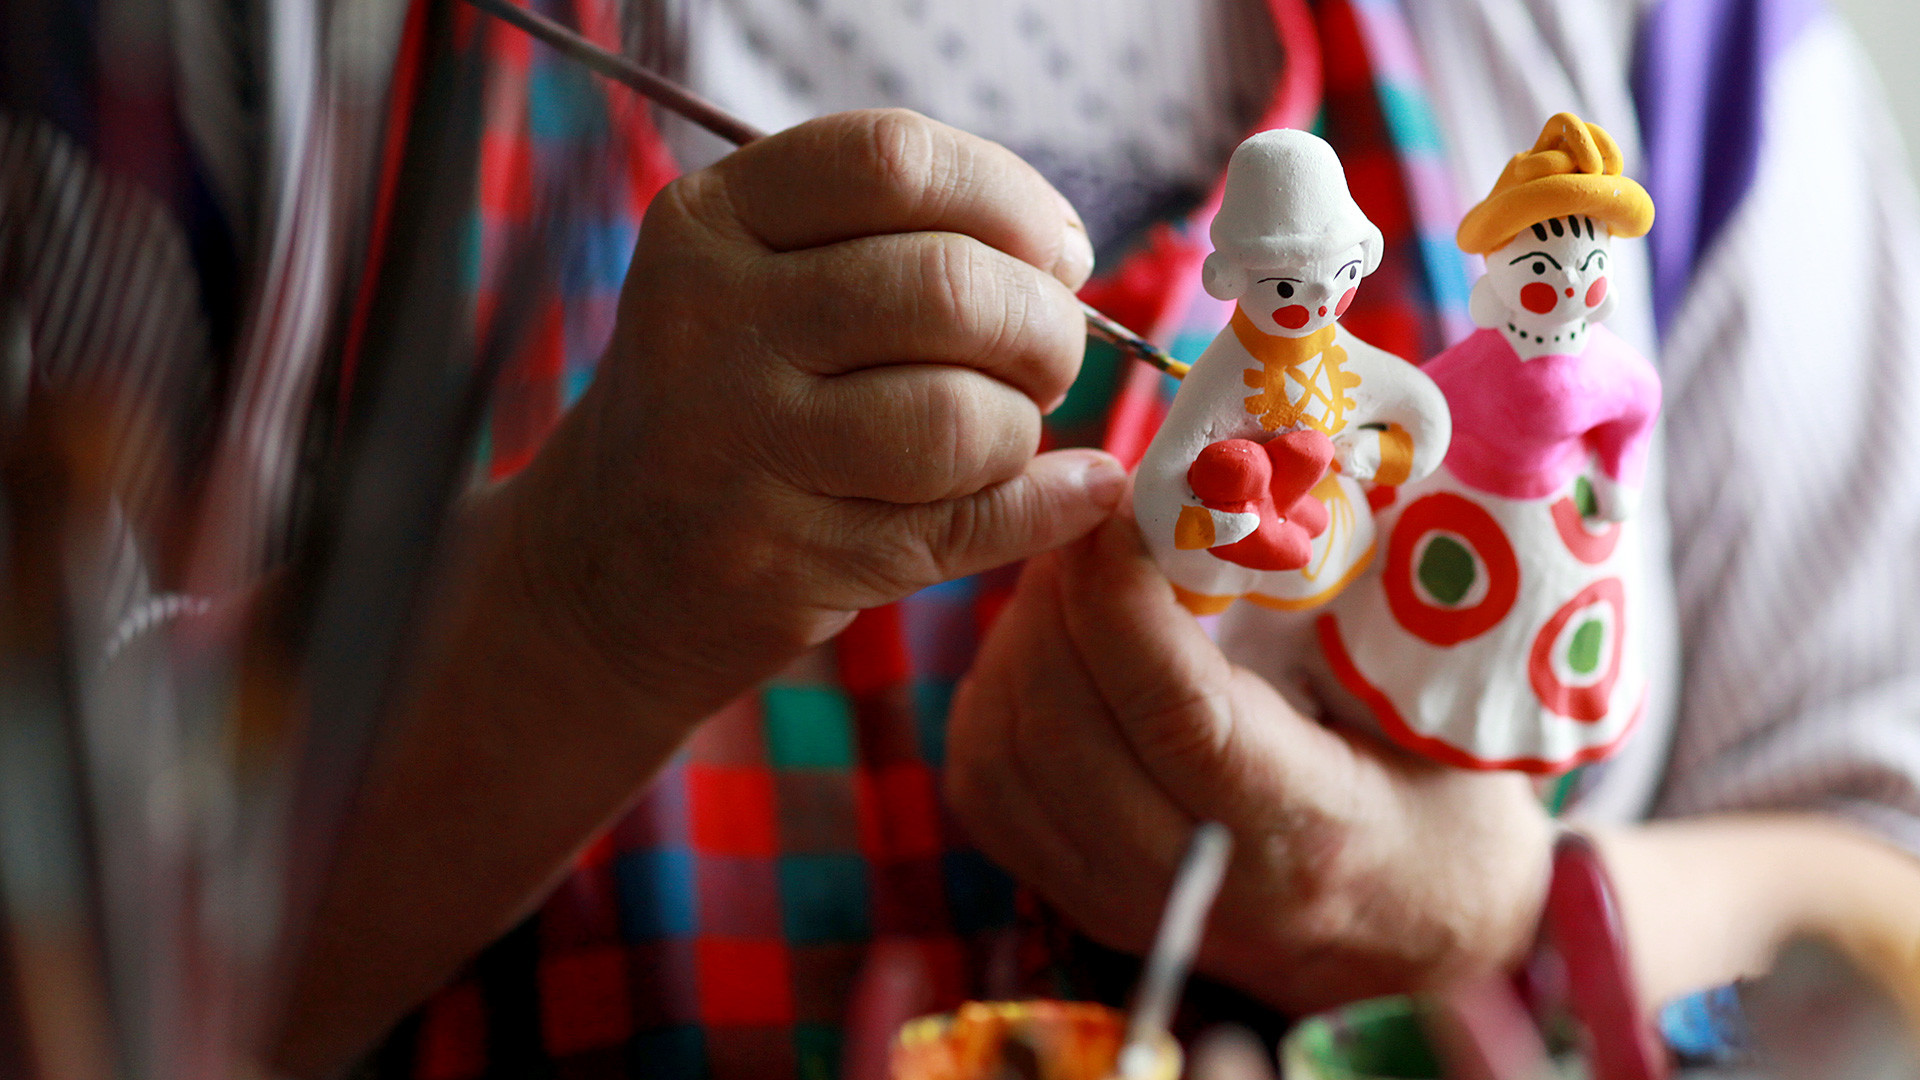 The Ultimate Guide To Russian Handicrafts From Matryoshka Dolls To